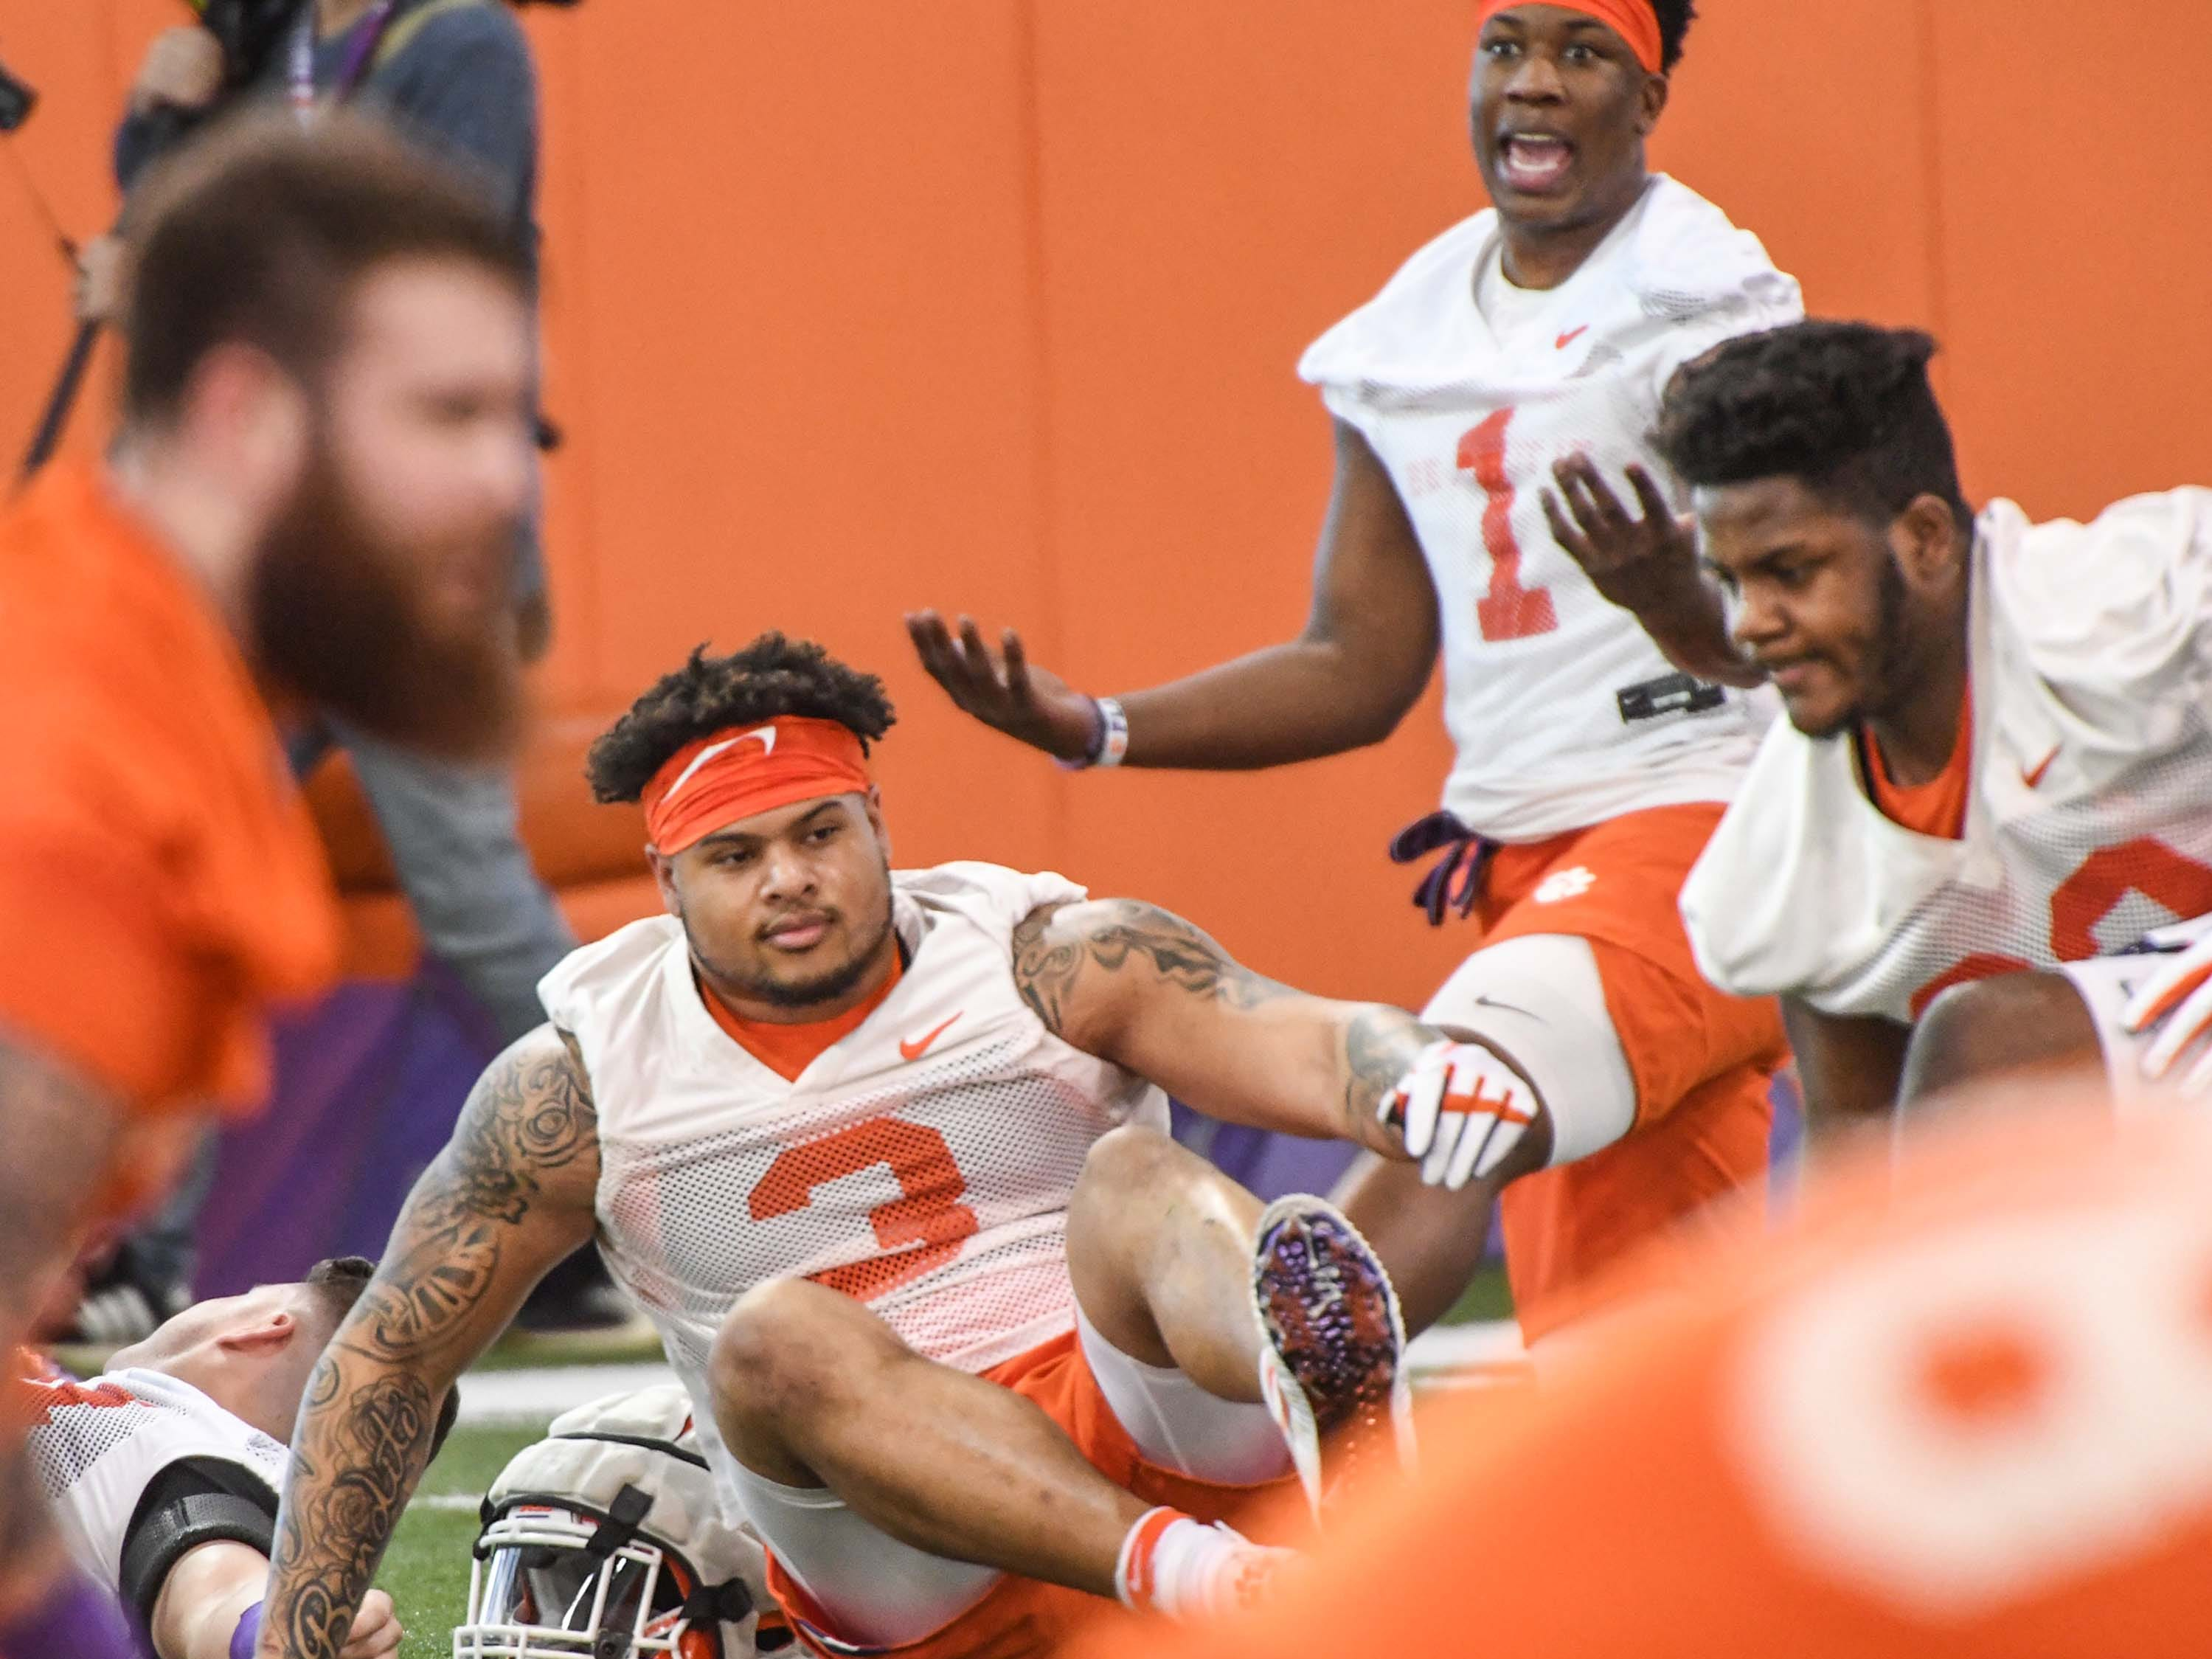 Clemson defensive end K.J. Henry (1) smiles with Clemson defensive lineman Xavier Thomas (3) during the first practice at the Clemson Indoor Practice Facility in Clemson Wednesday, February 27, 2019.